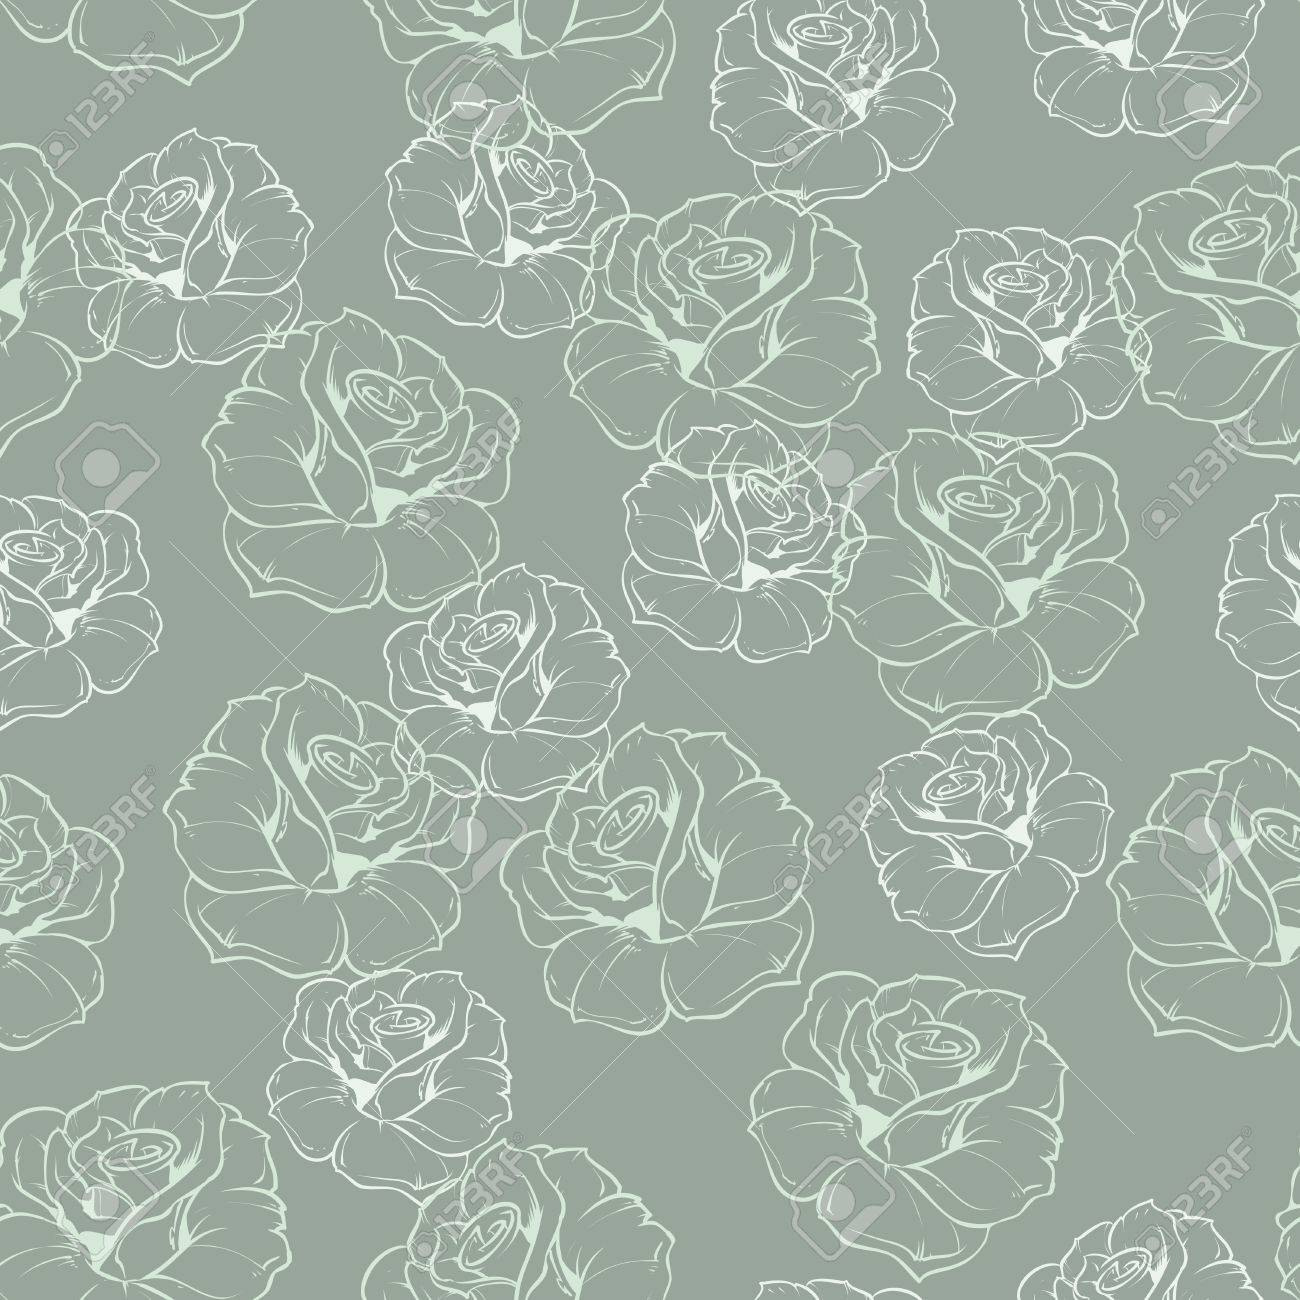 Seamless Vector Mint Green Retro Floral Pattern With White Roses